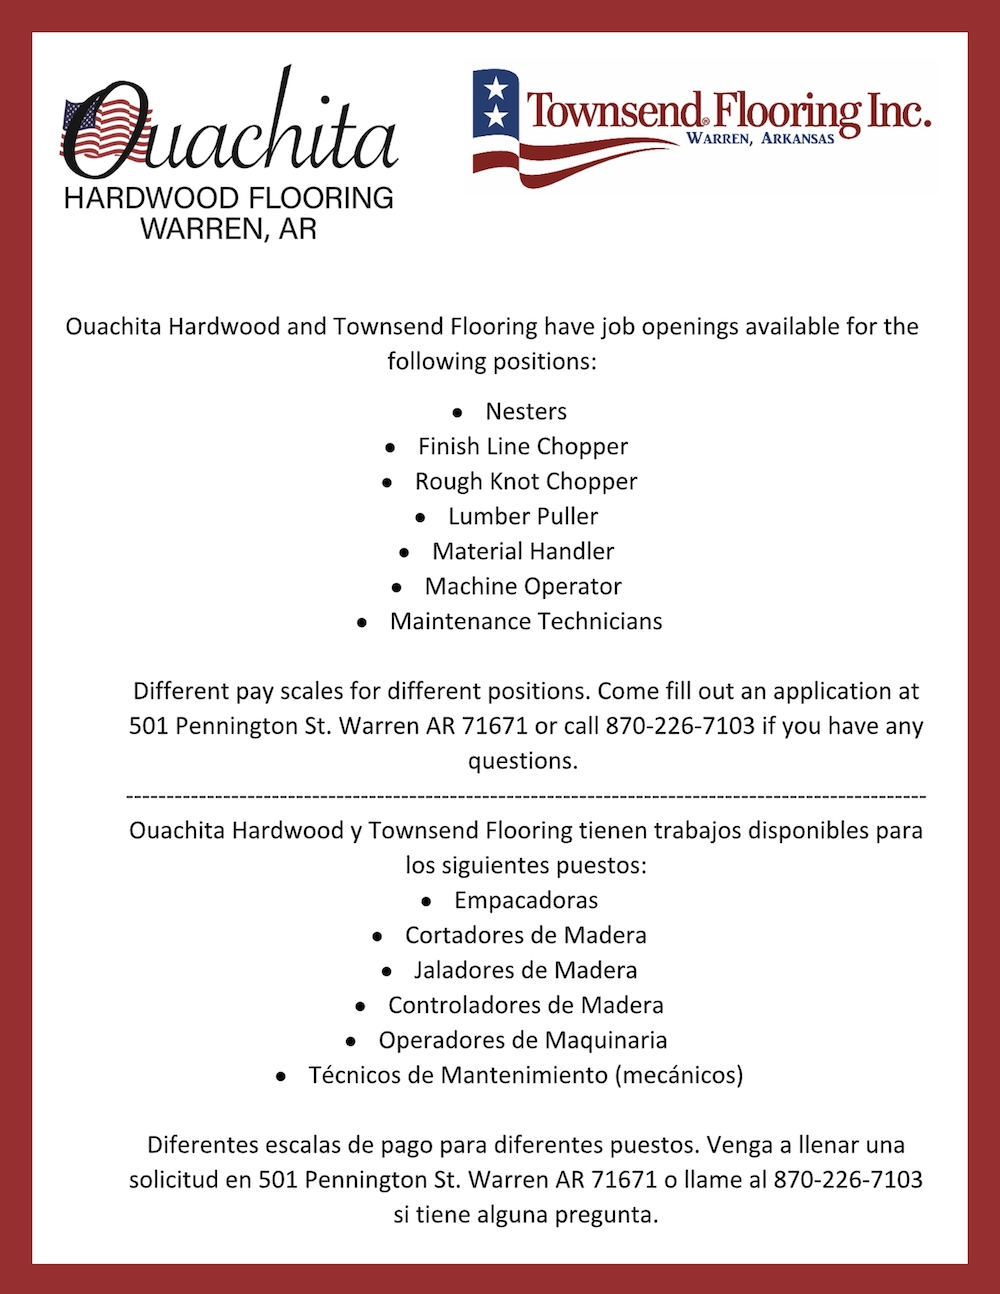 Ouachita Hardwood and Townsend Flooring have job openings